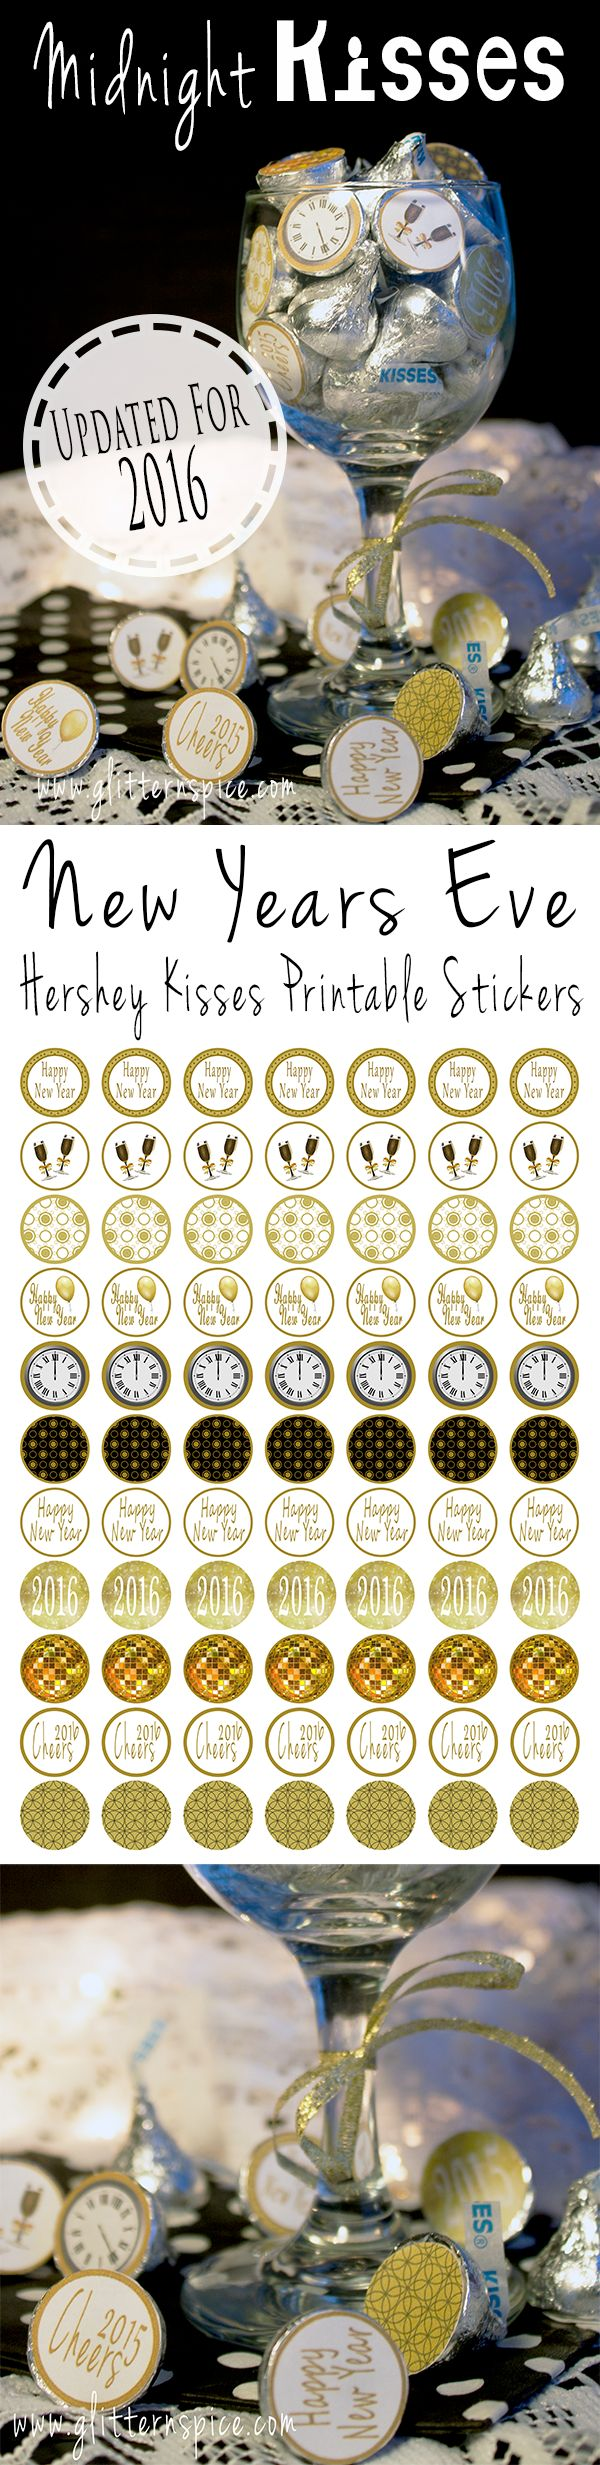 FREE printable New Years Eve Hershey Midnight KissesStickers